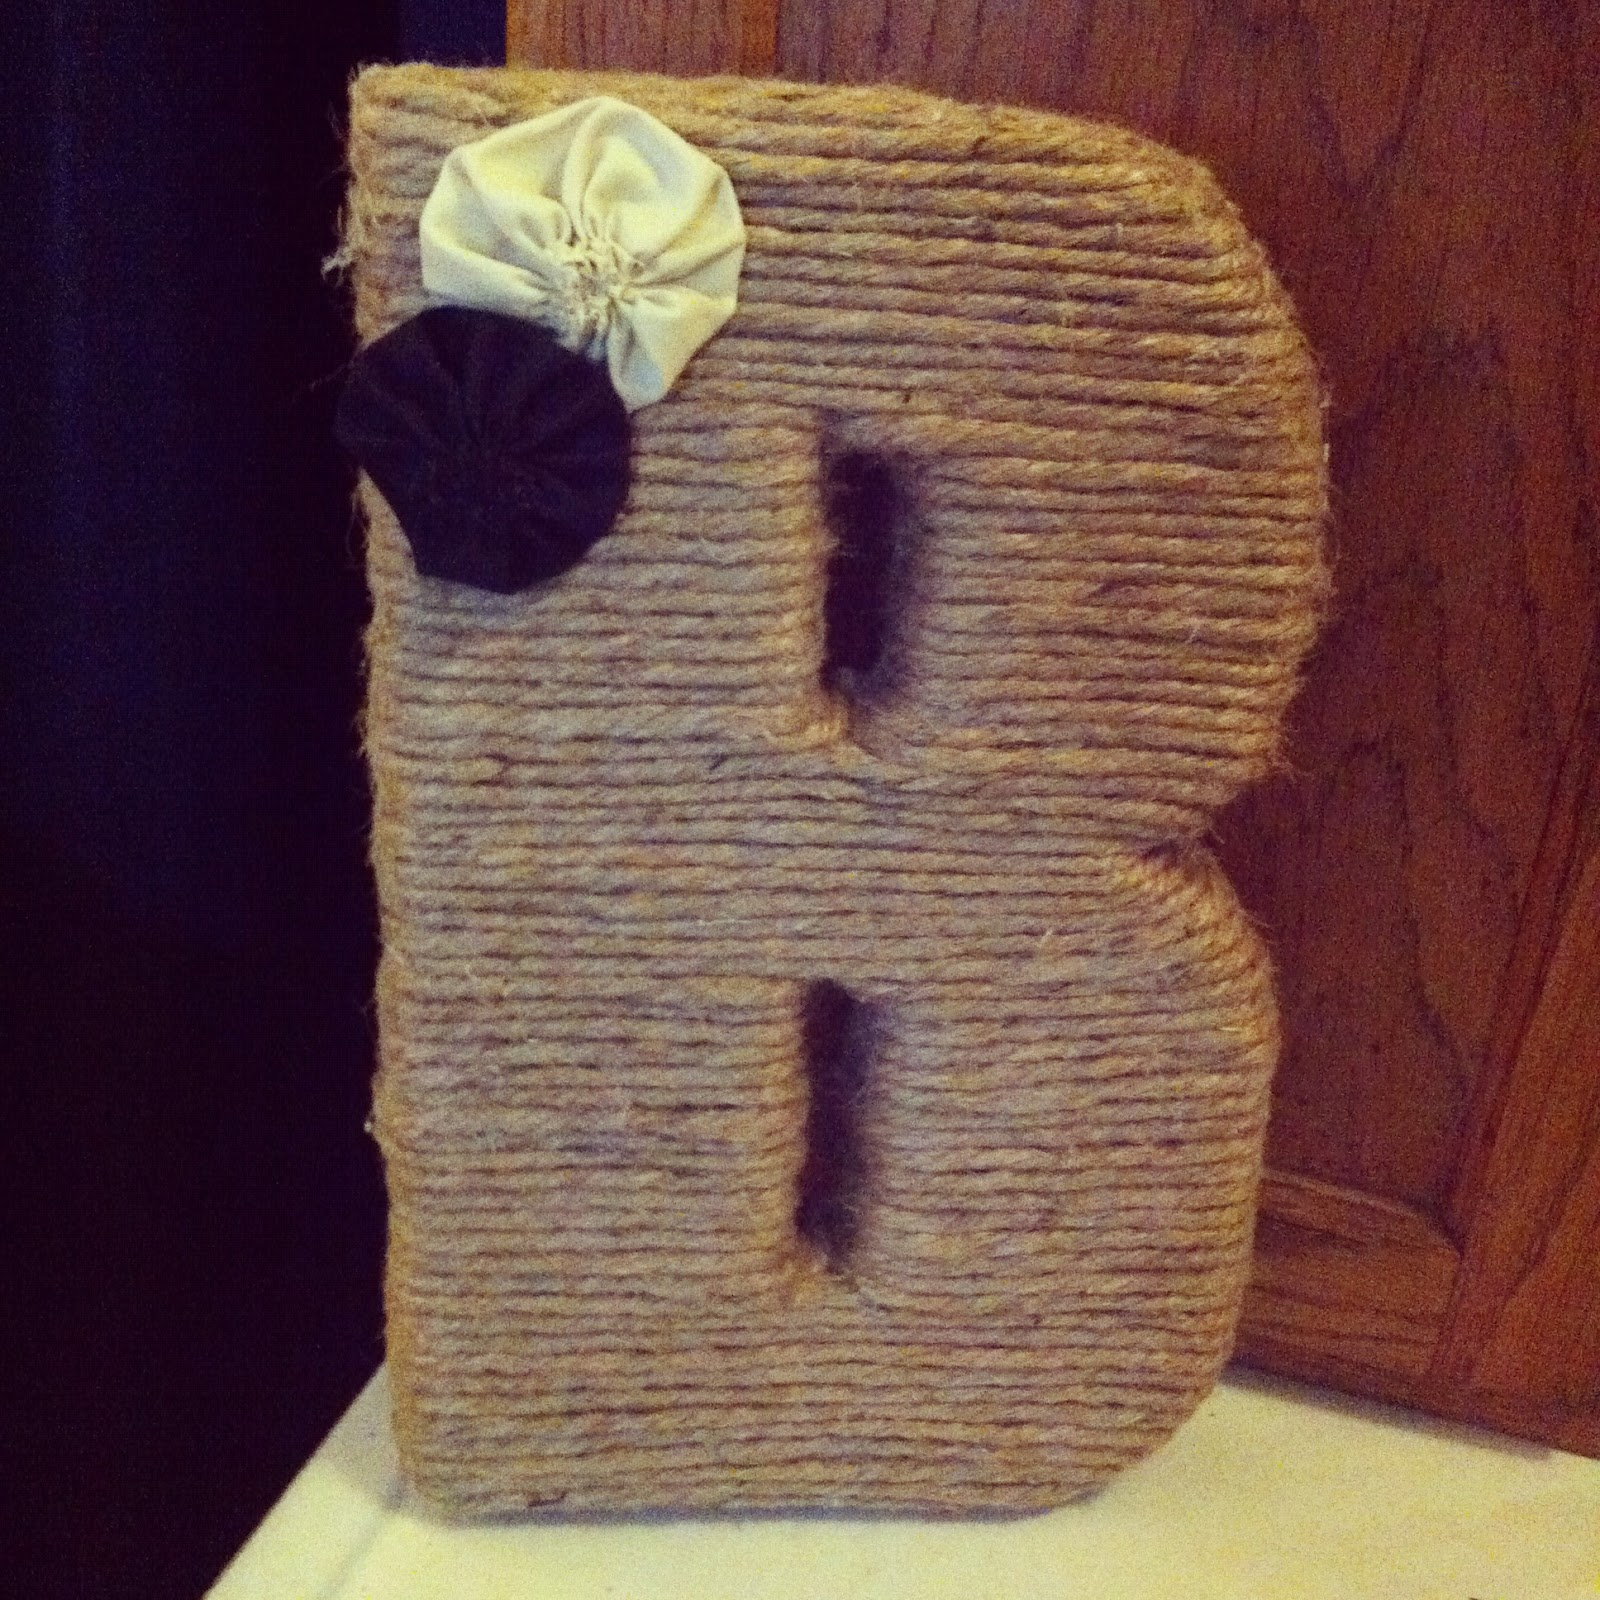 Crystal cattle diy jute monogrammed wedding letter for Diy jute